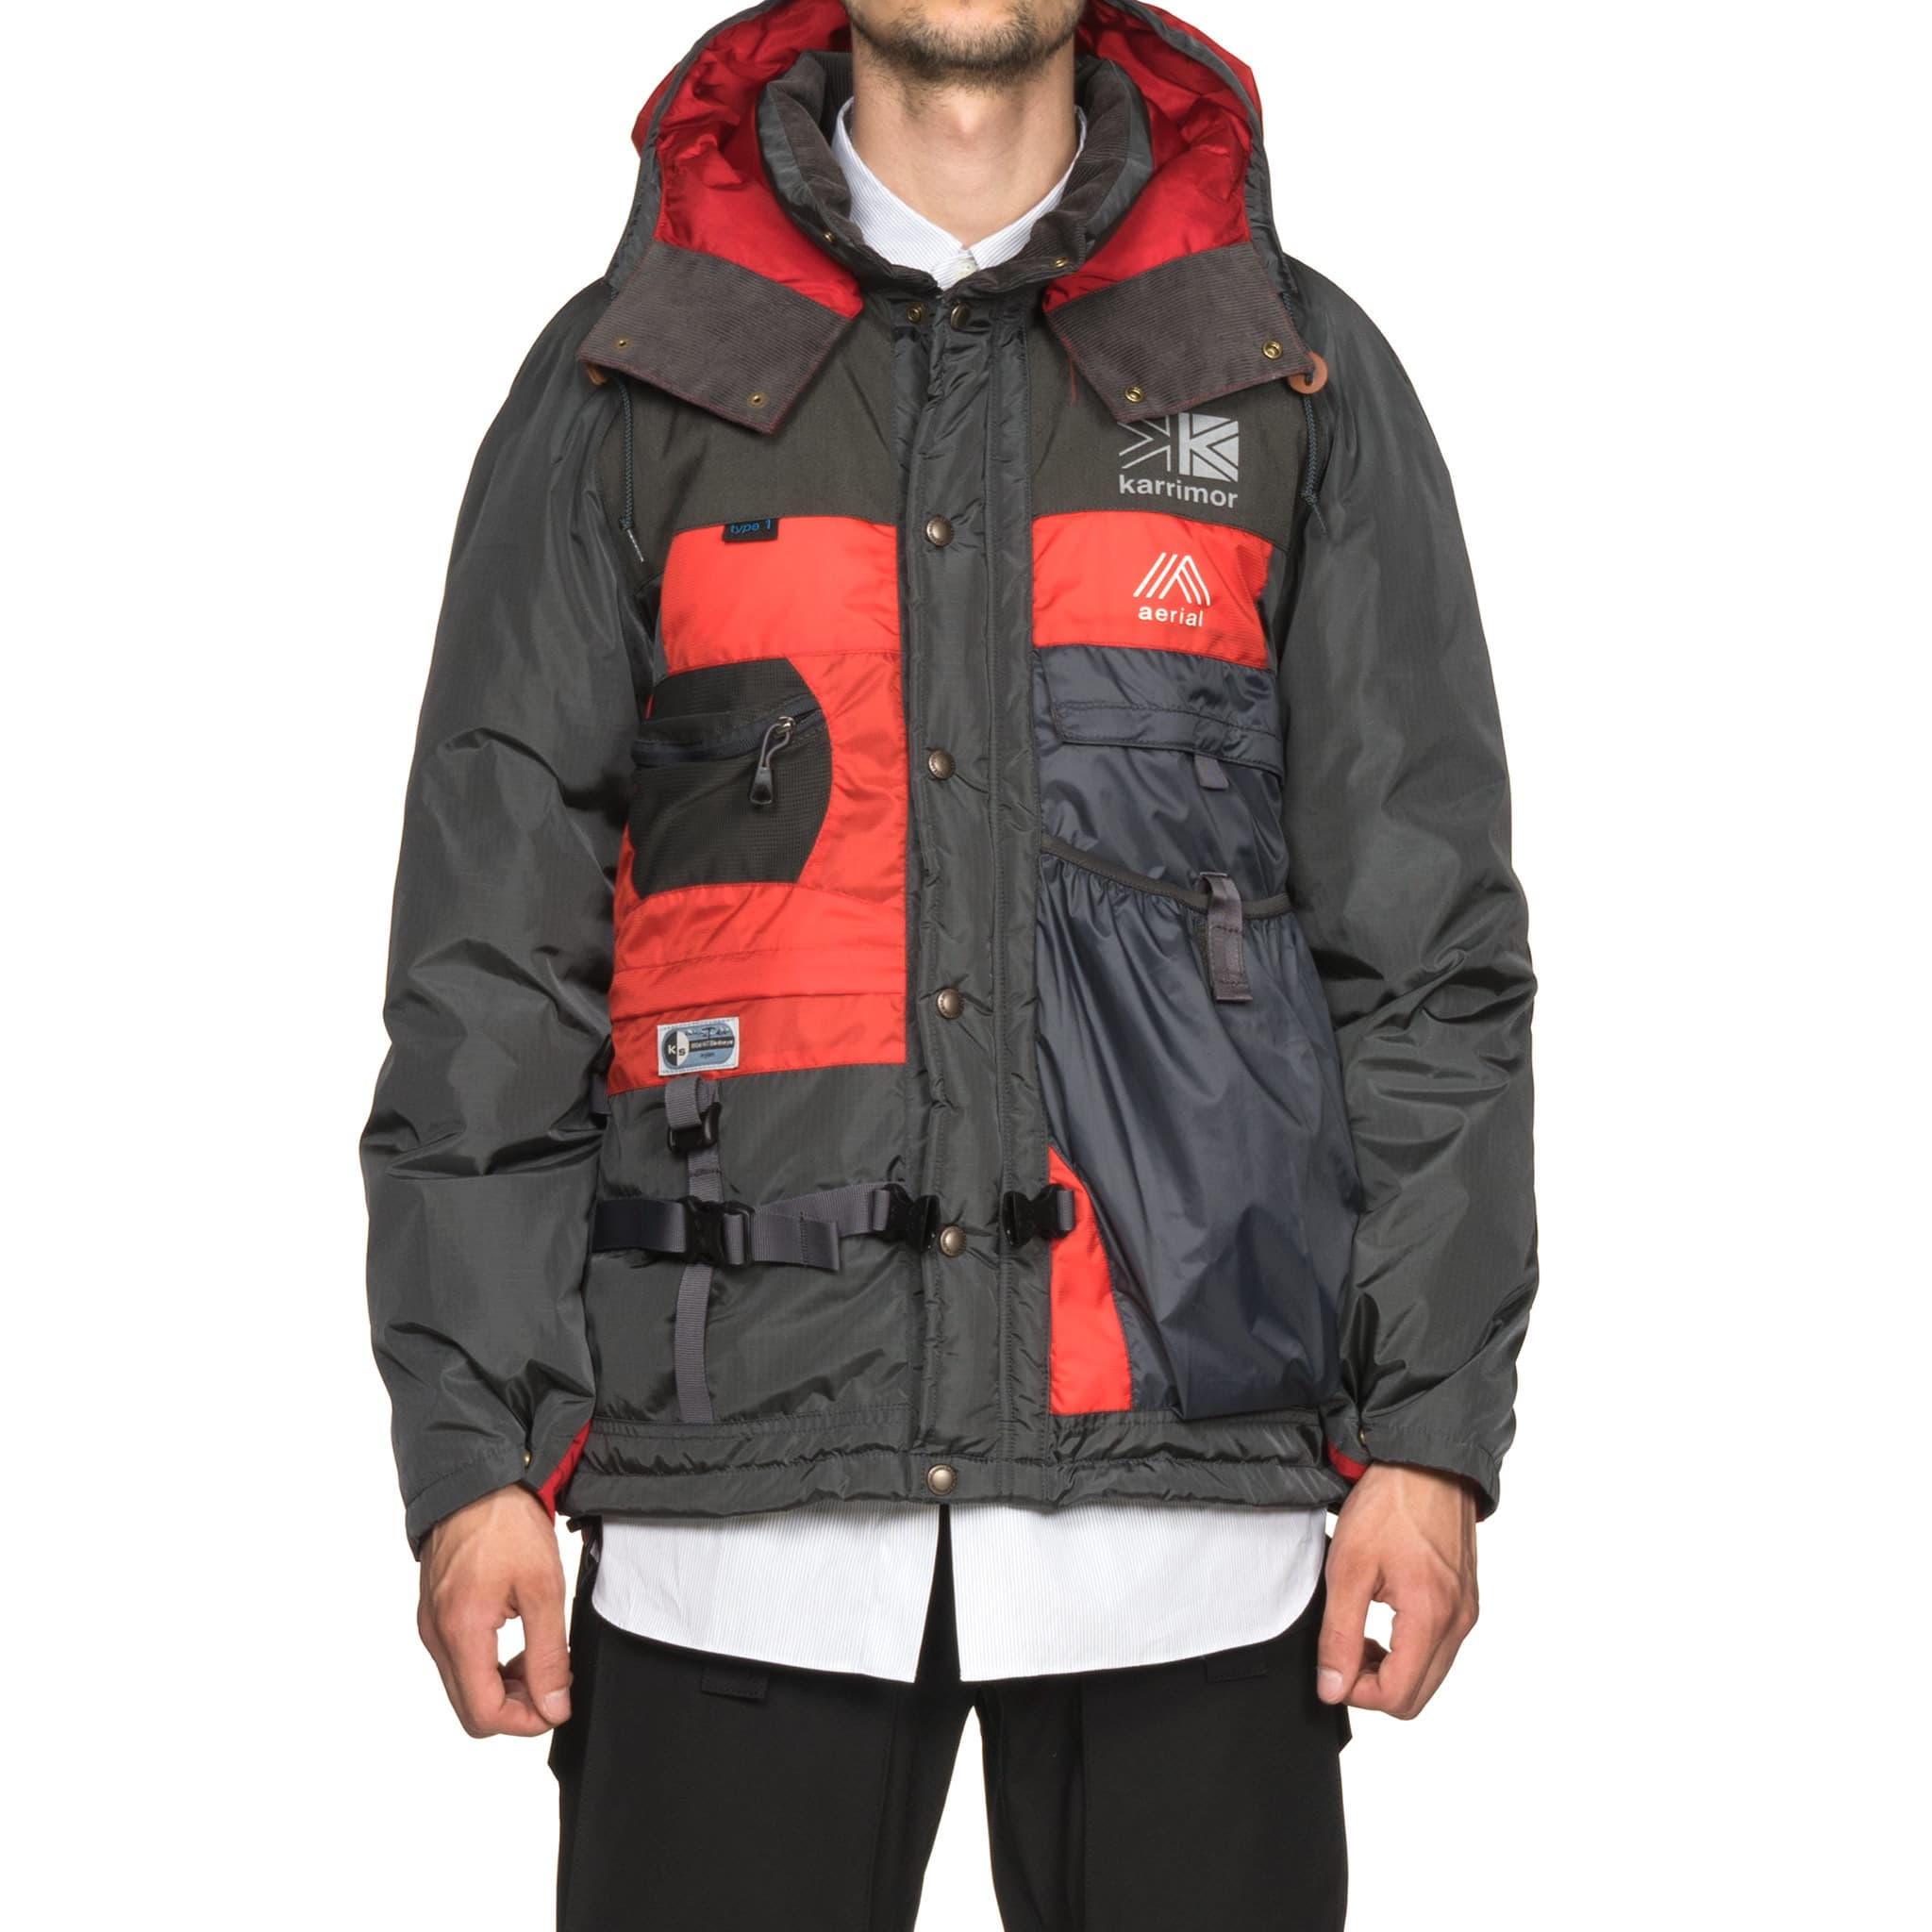 252908cead Junya Watanabe MAN caused a stir when he debuted his SS18 collection  featuring jackets intricately made from deconstructed hiking backpacks. For  FW18